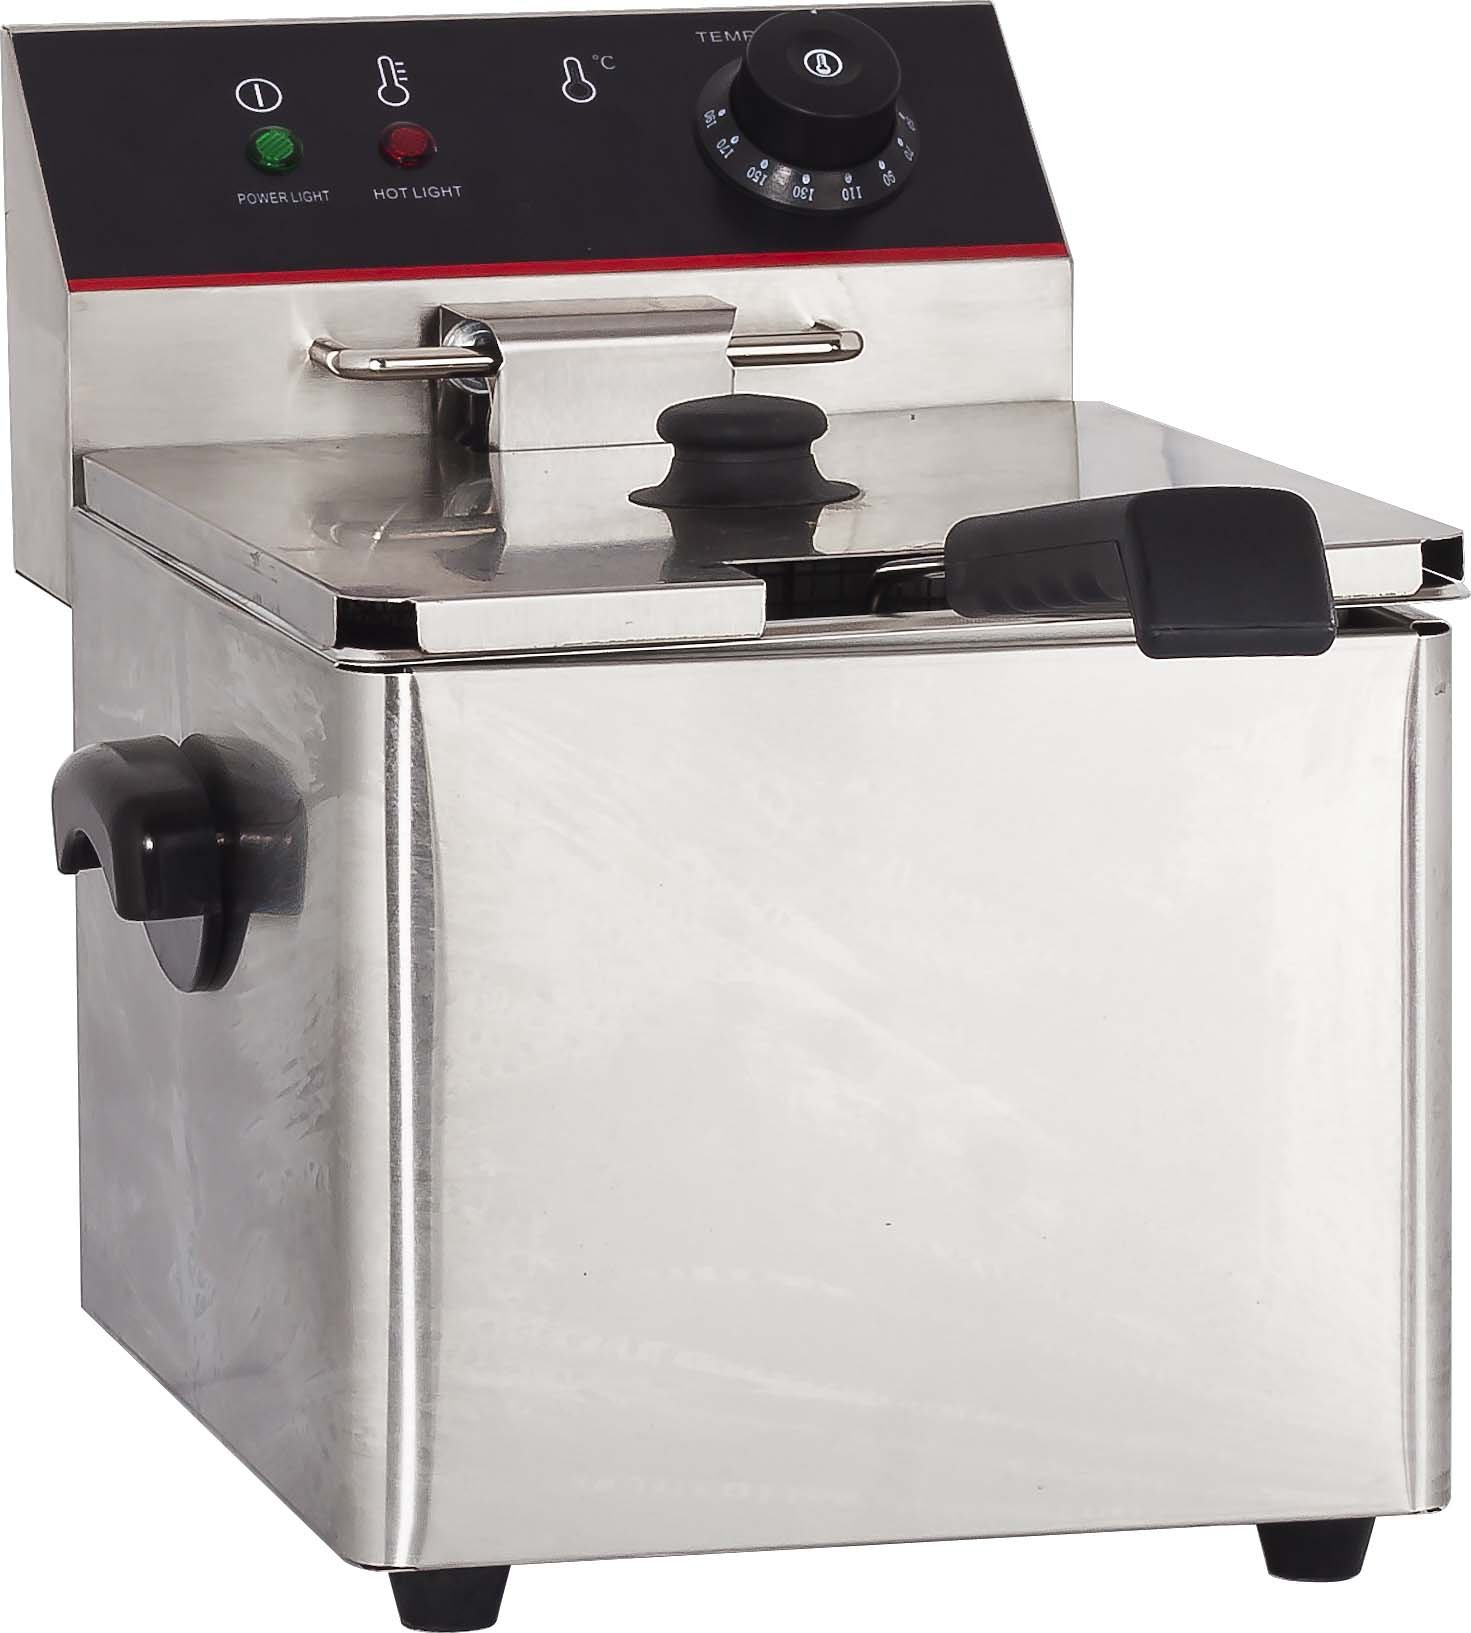 Hakka 8L Commercial Stainless Steel Deep Fryers Electric Professional Restaurant Grade Turkey Fryers (TEF-8L)